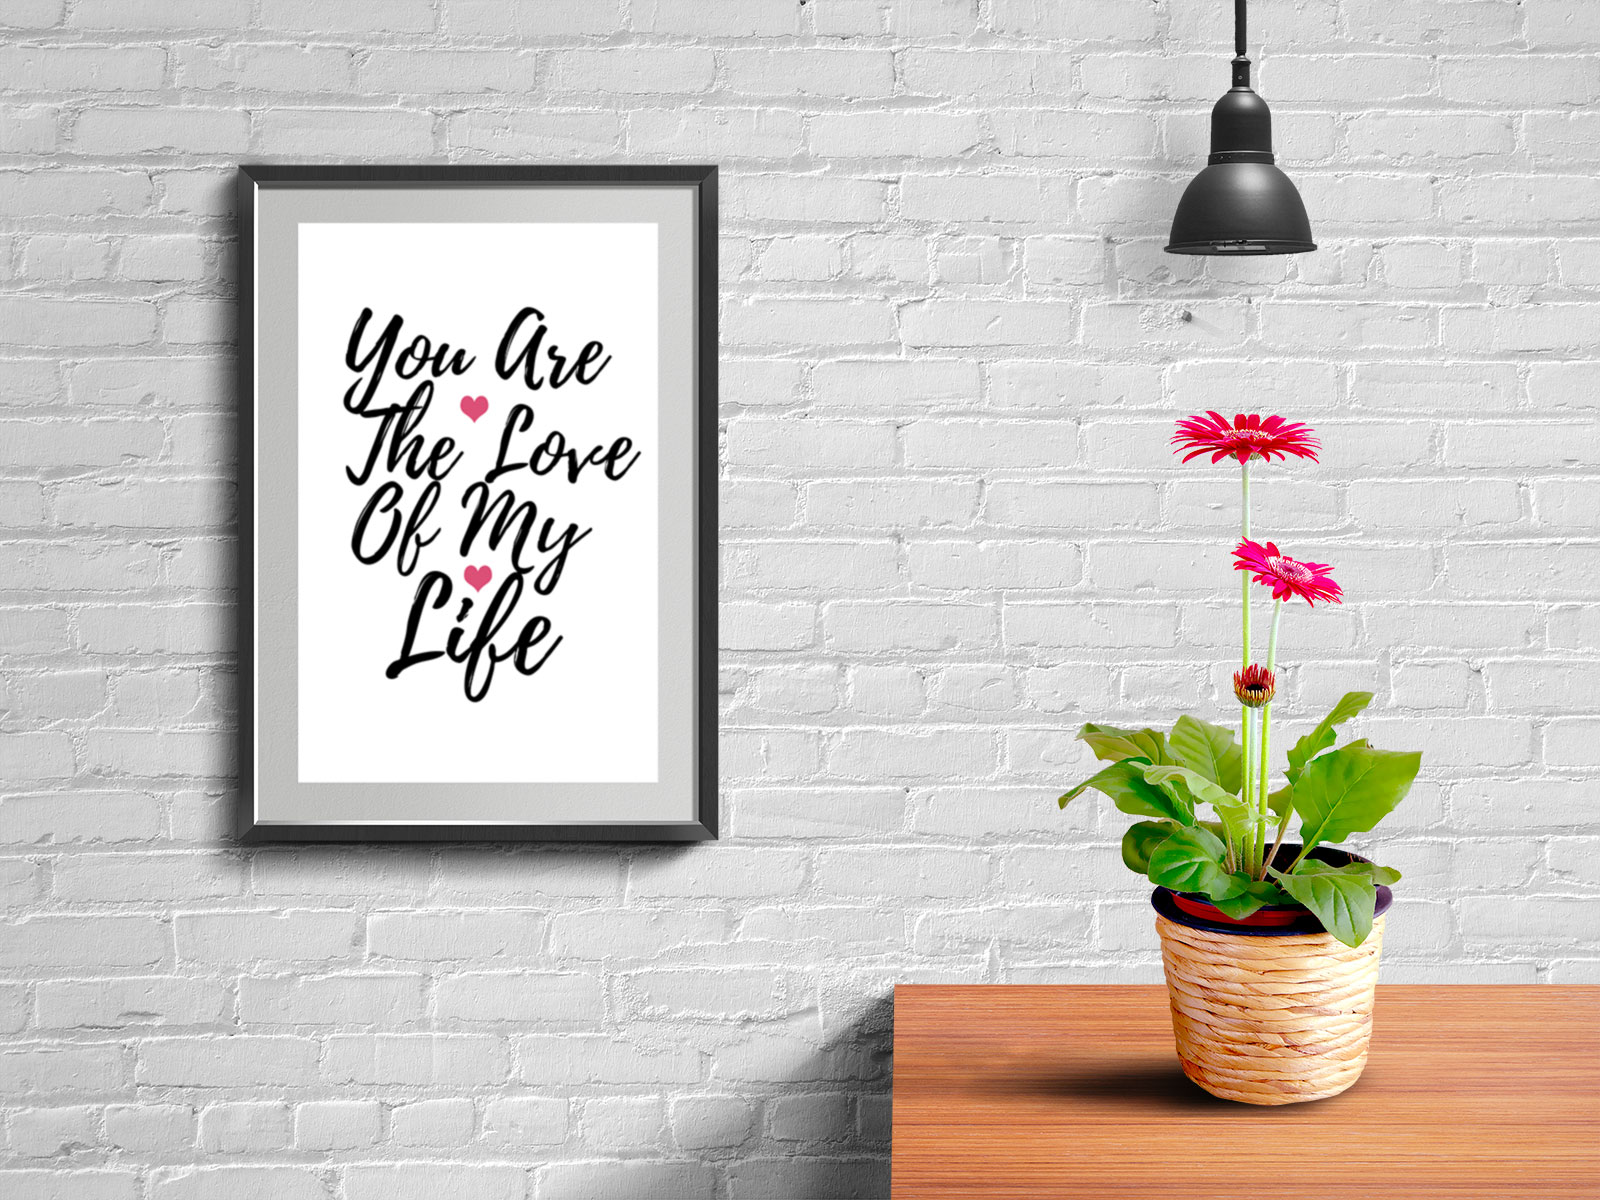 Free-Wall-Frame-Poster-Mockup-PSD